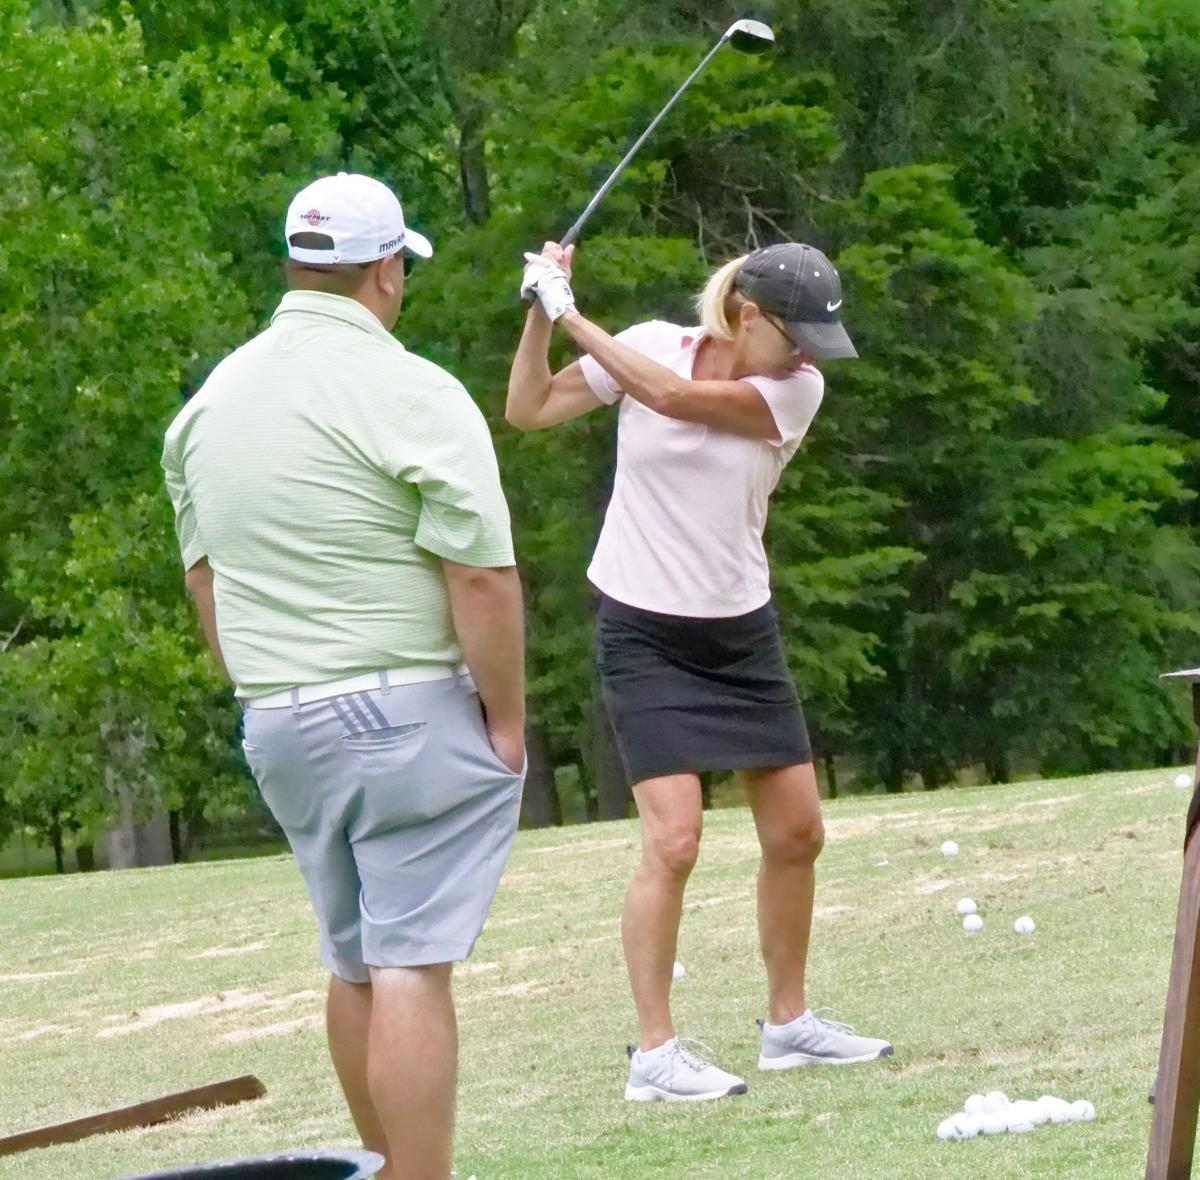 Village golfers link up on the greens